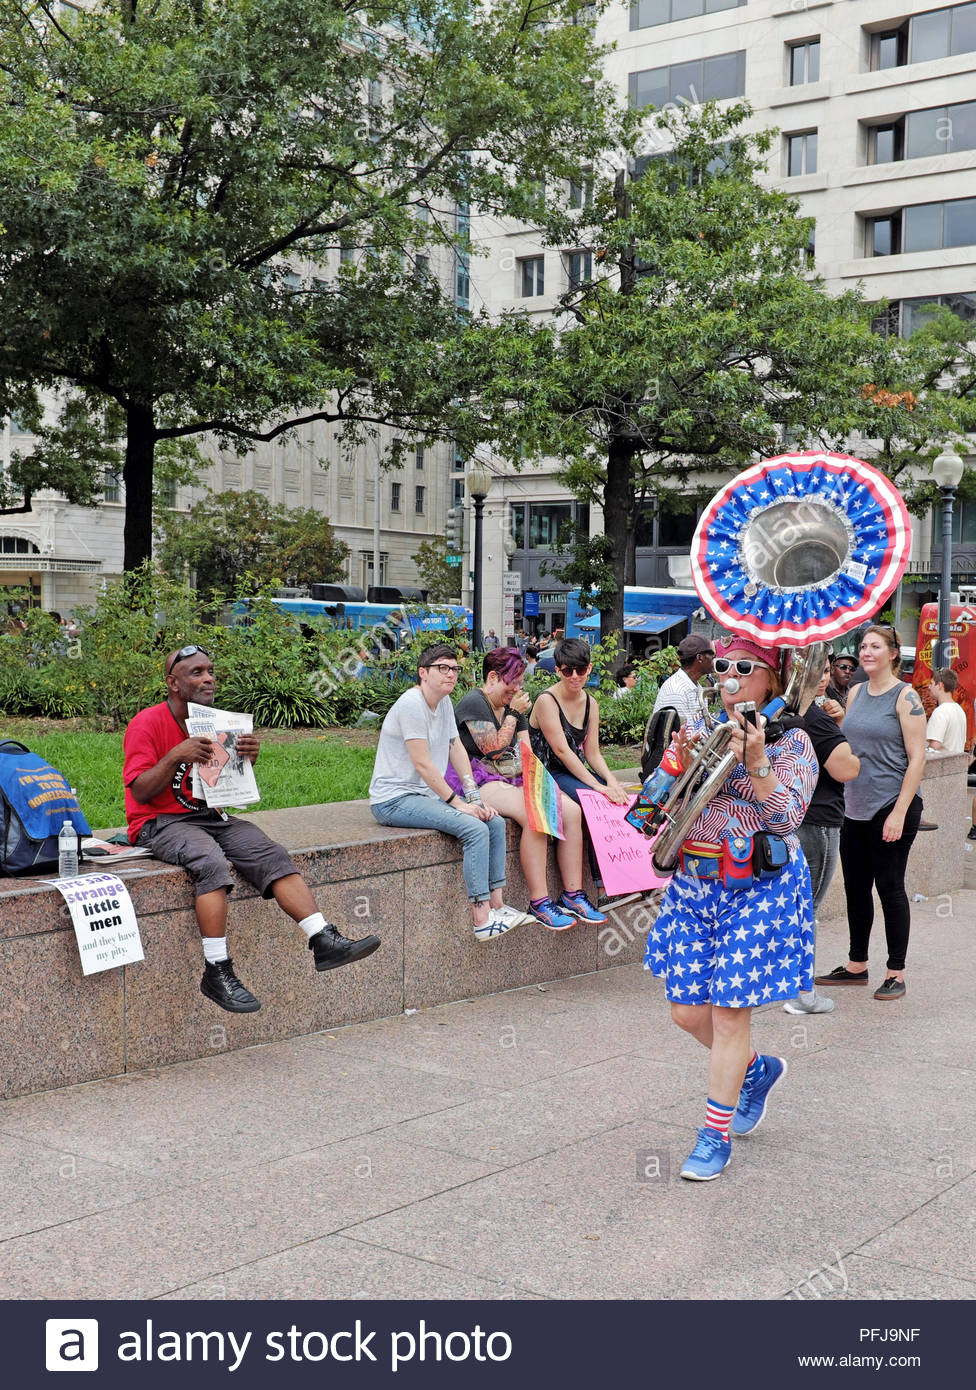 A female tuba player dressed in patriotic clothing makes her way through Freedom Park in Washington DC during an anti-hate rally on August 19, 2018. - Stock Image